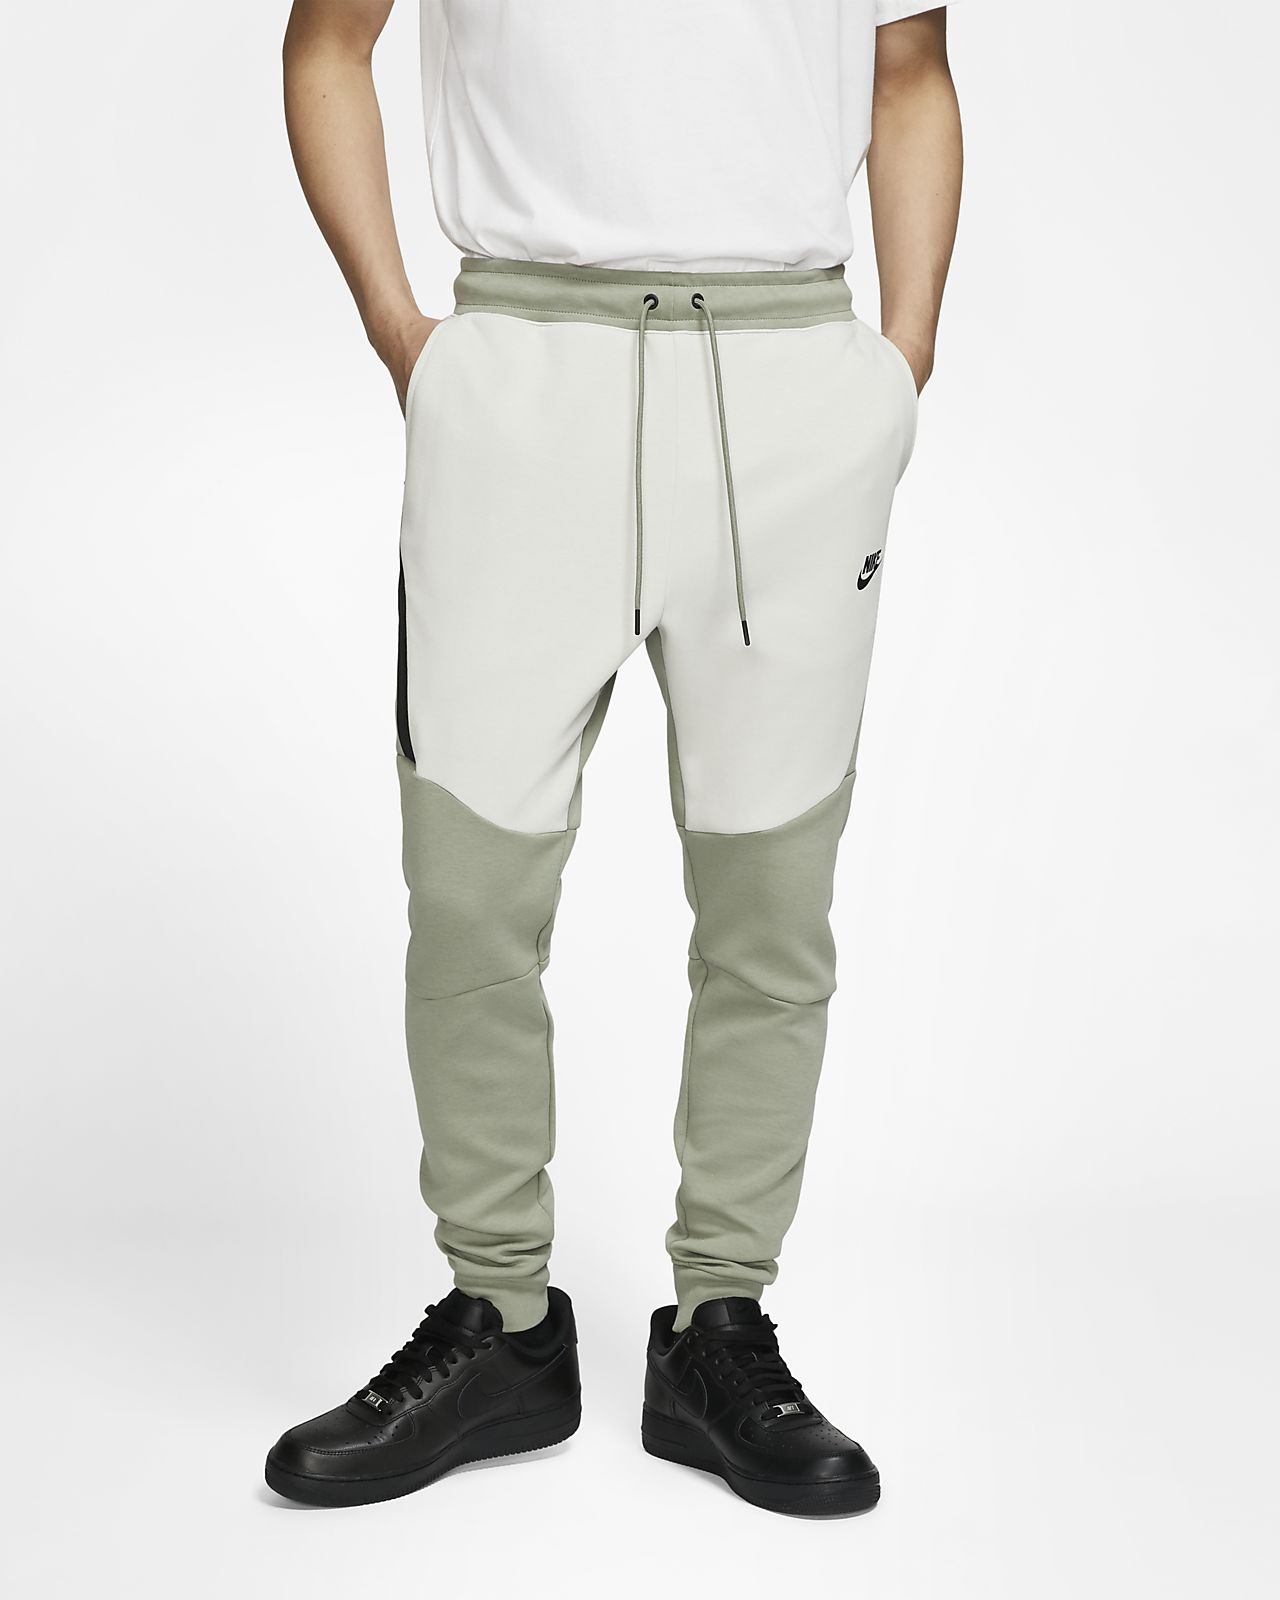 5495b9b78b053 Nike Sportswear Tech Fleece Men's Joggers. Nike.com GB